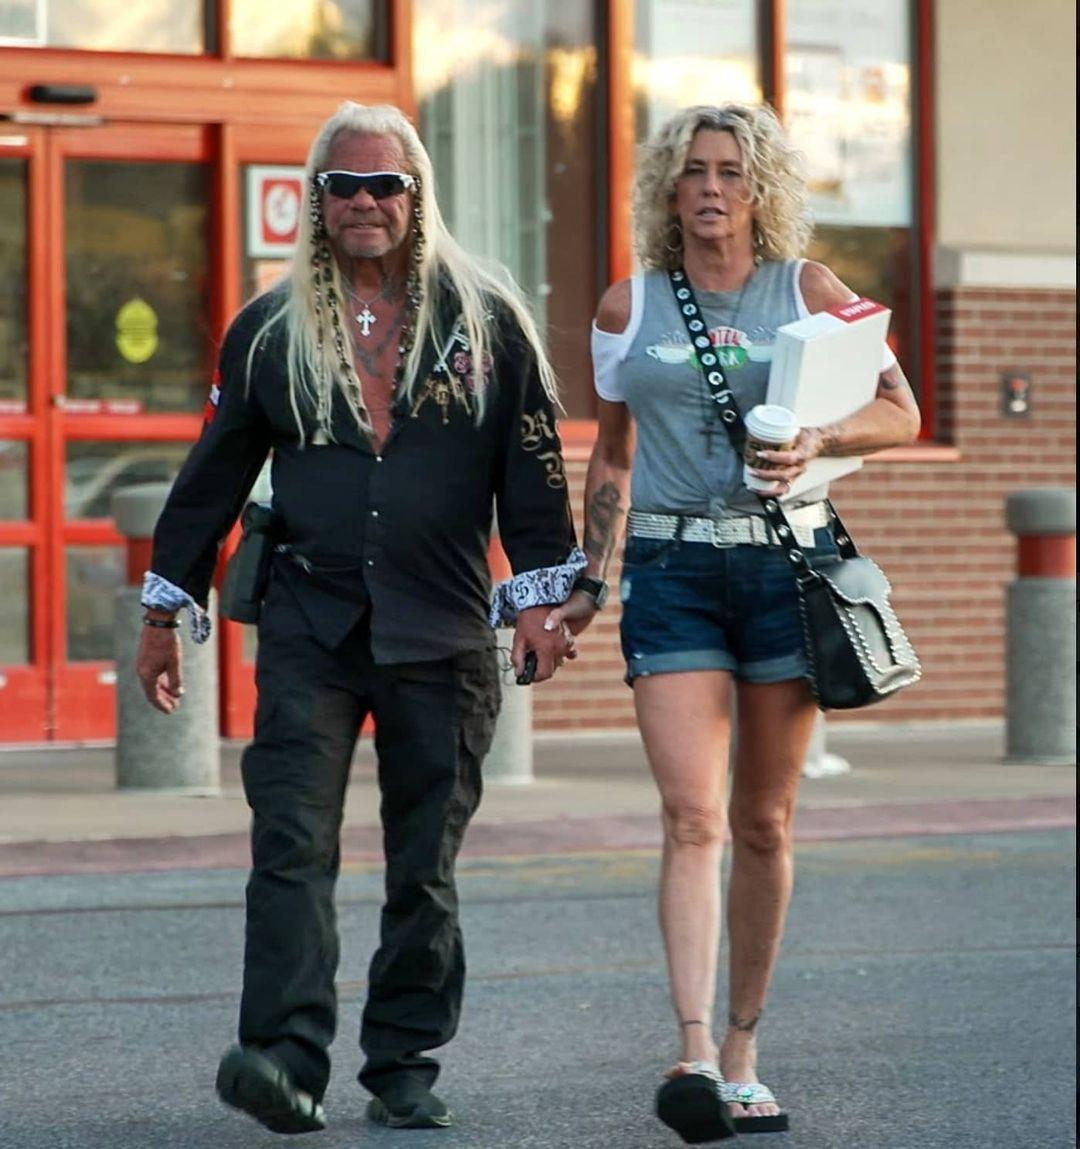 Dog The Bounty Hunter Joins The Search for Alleged Killer Brian Laundrie